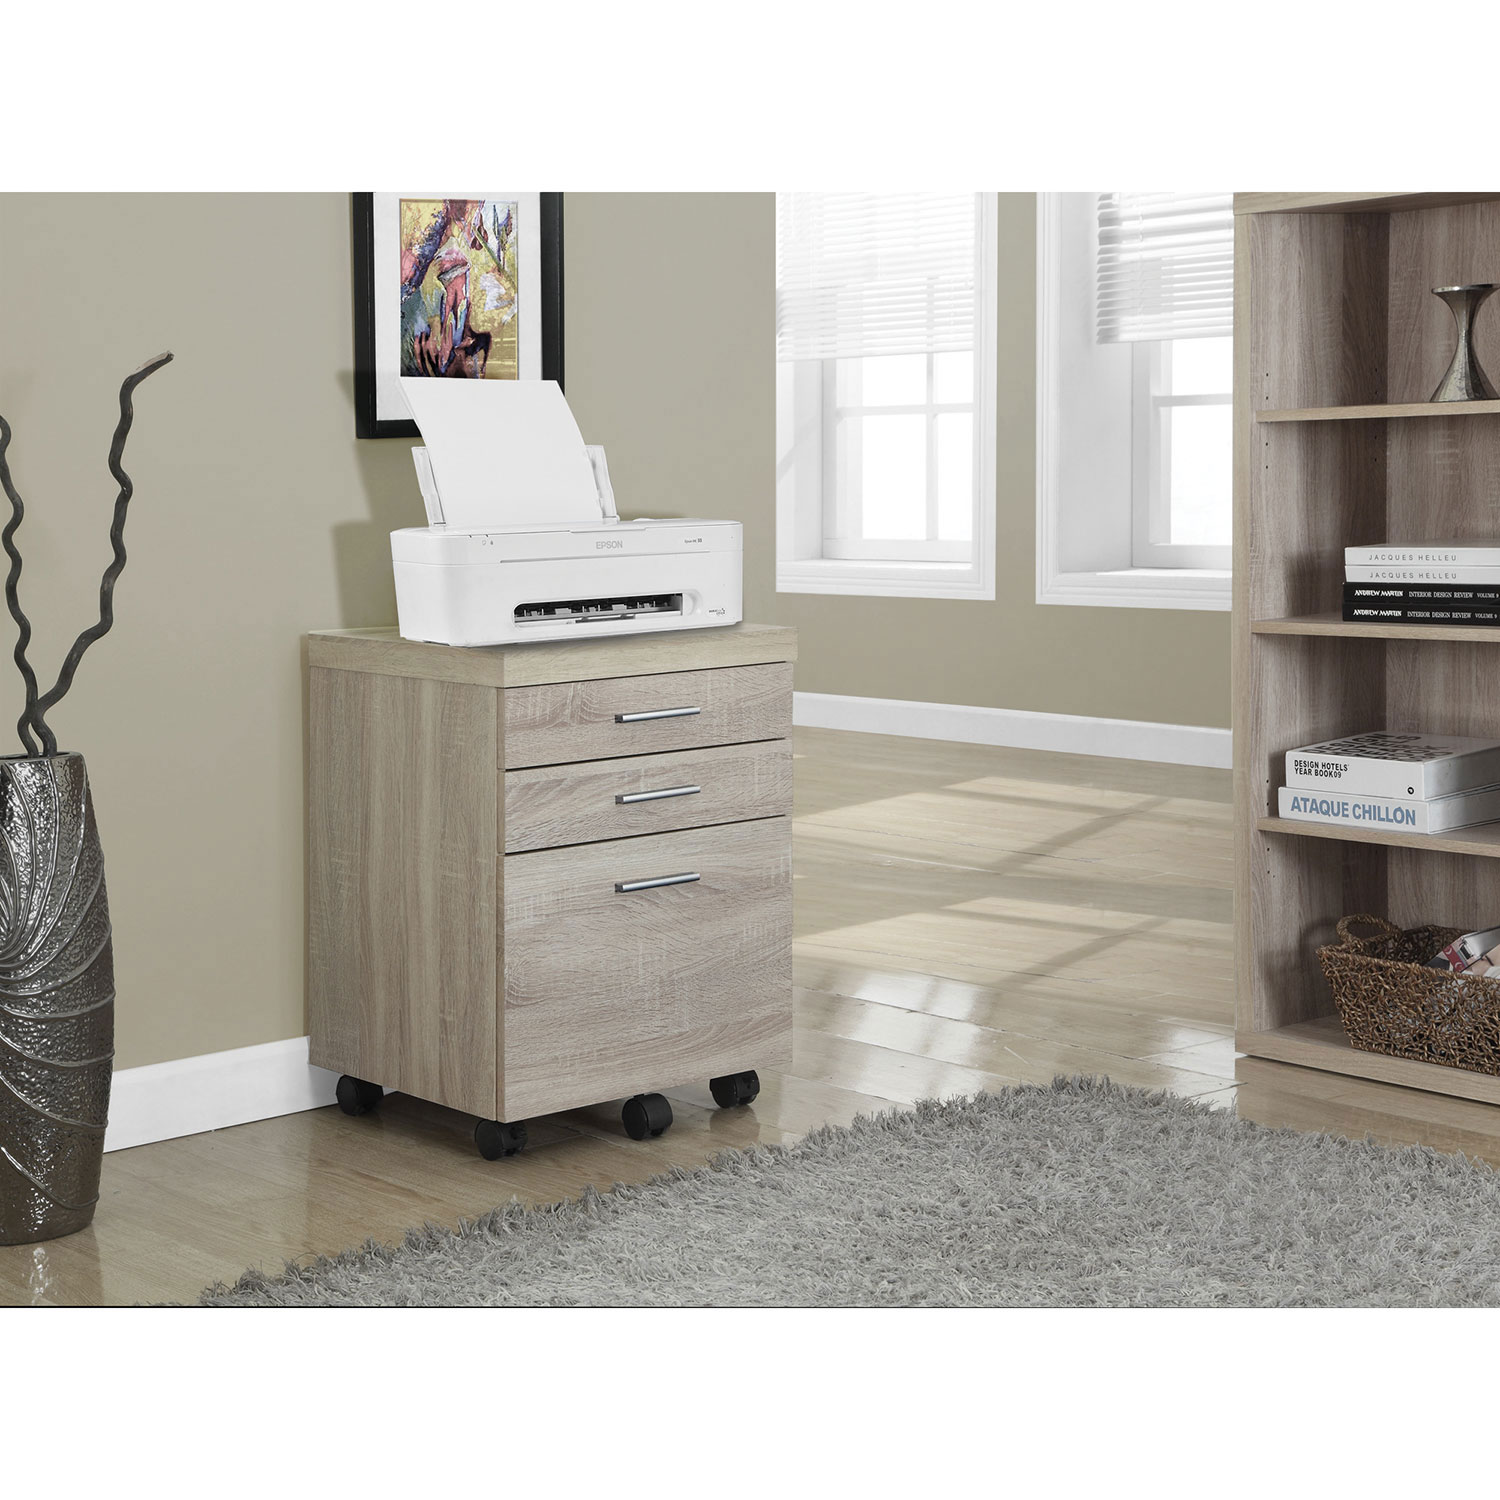 Monarch 3 Drawer Vertical Filing Cabinet   Natural : Filing Cabinets U0026  Office Storage   Best Buy Canada